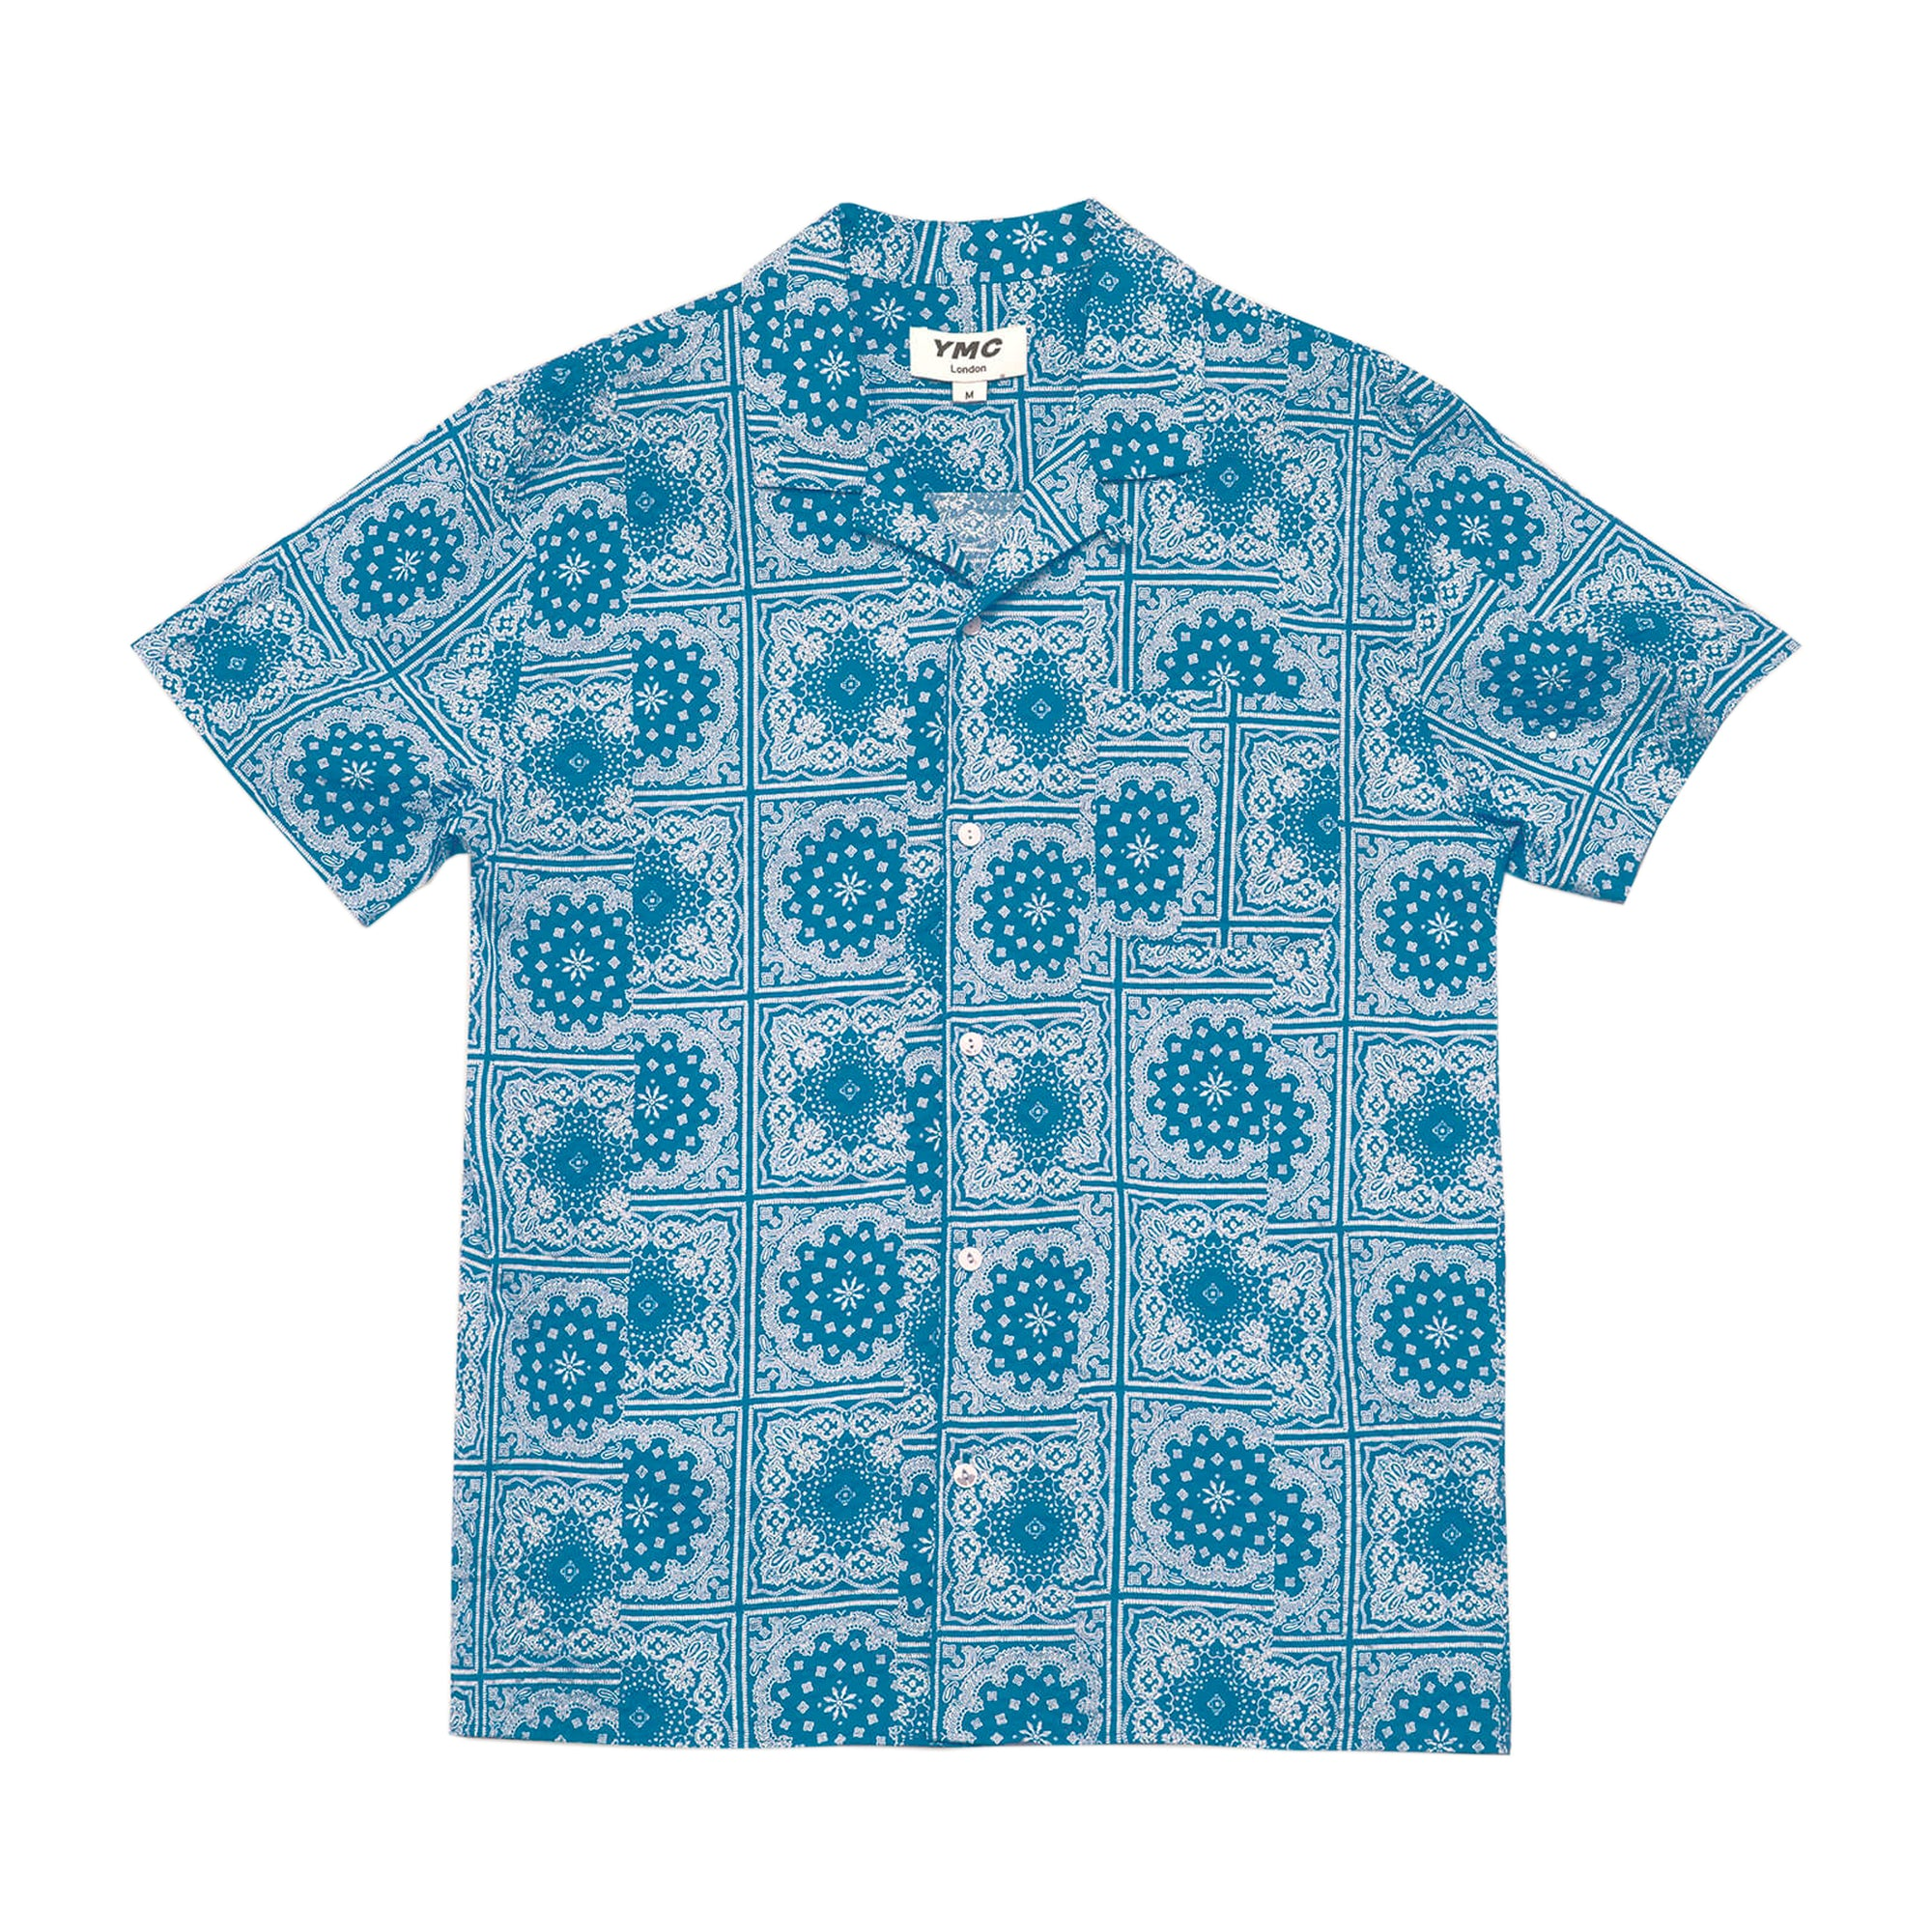 YMC Malick Bandana Print Shirt: Blue - The Union Project